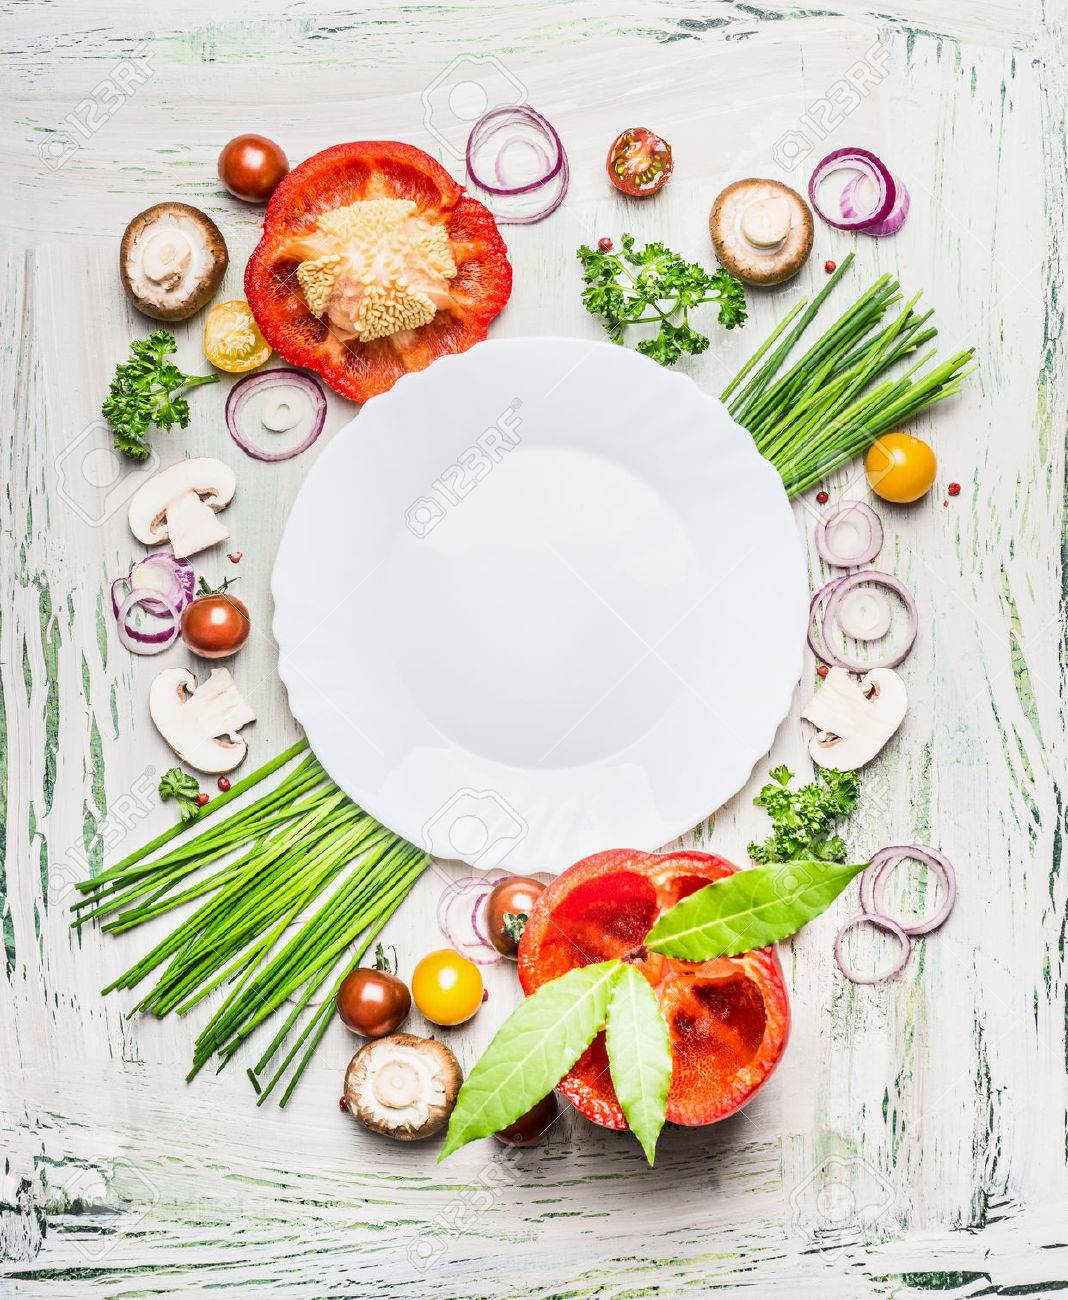 Various vegetables and seasoning cooking ingredients around blank plate on light rustic wooden background, top view composing. Healthy eating and diet food concept. - 54220508